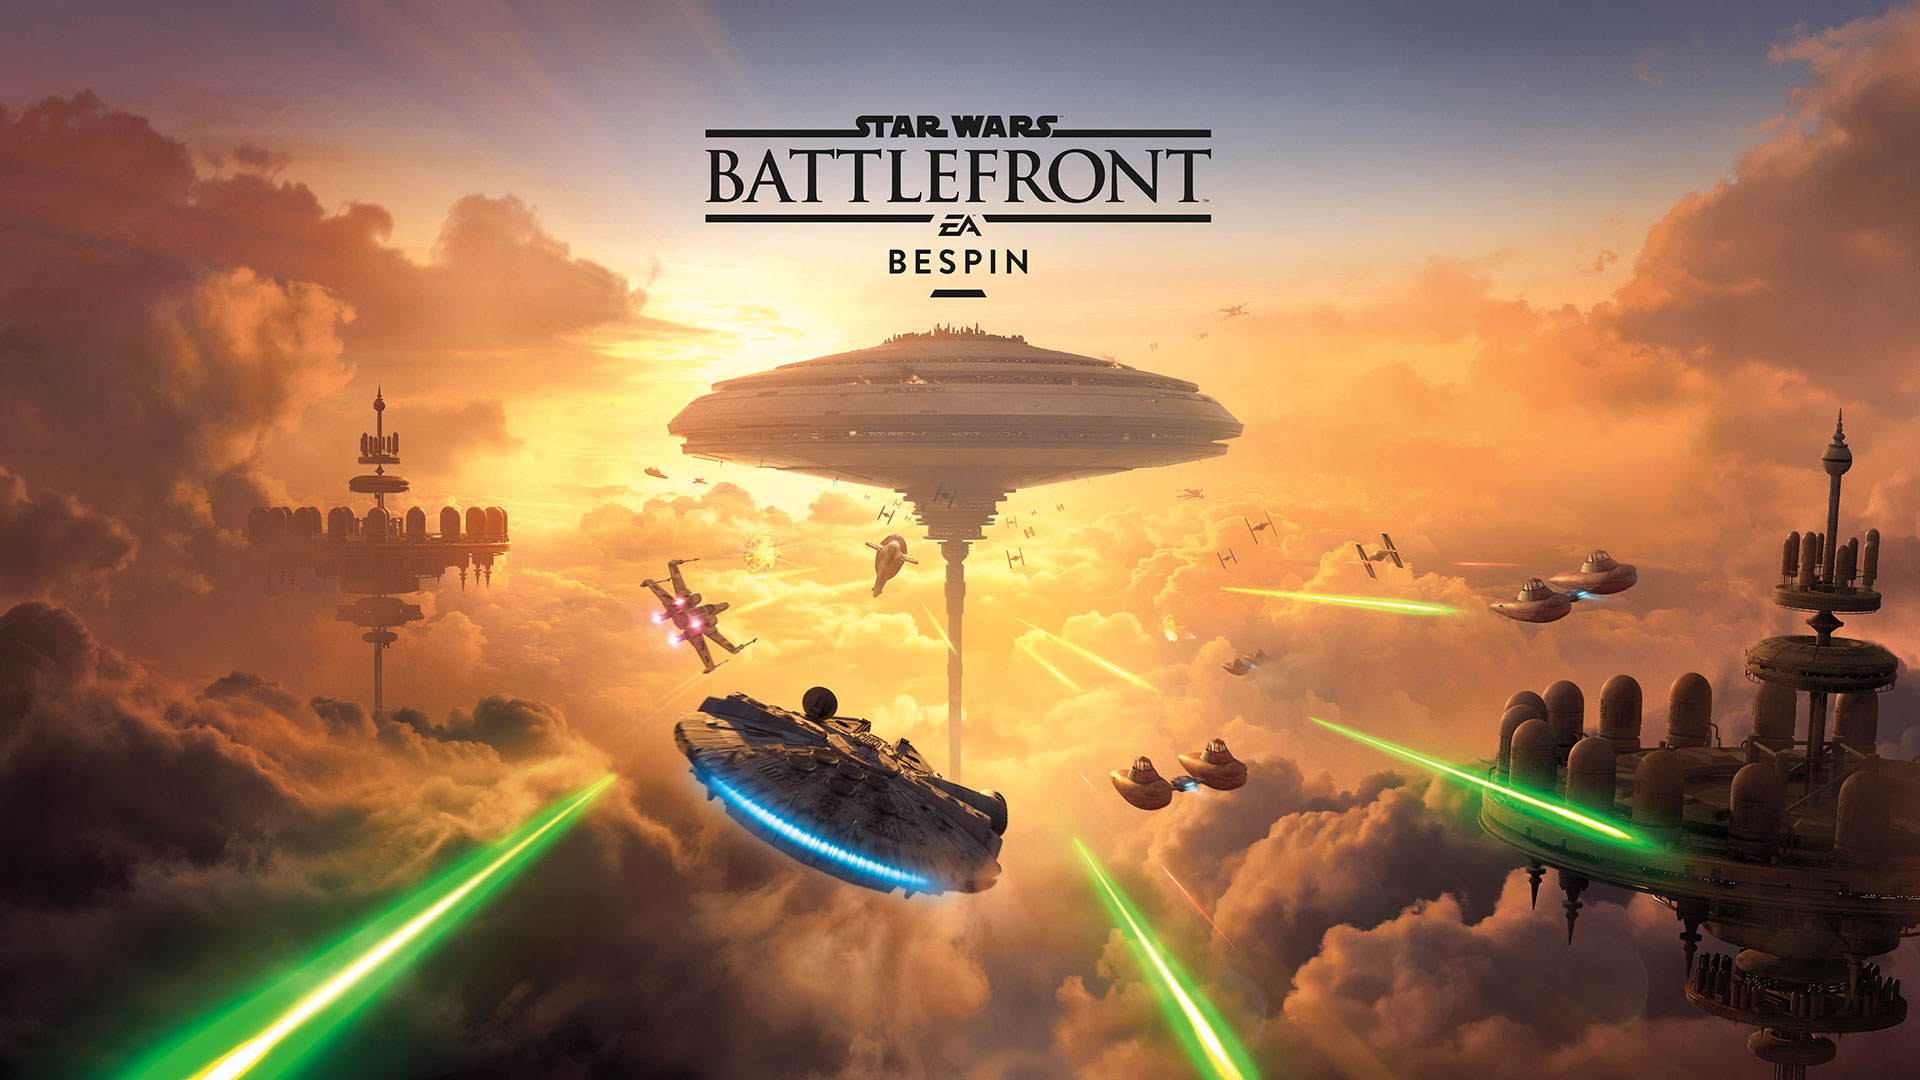 Star Wars Battlefront Bespin Star Wars Battlefront Wiki 1920x1080